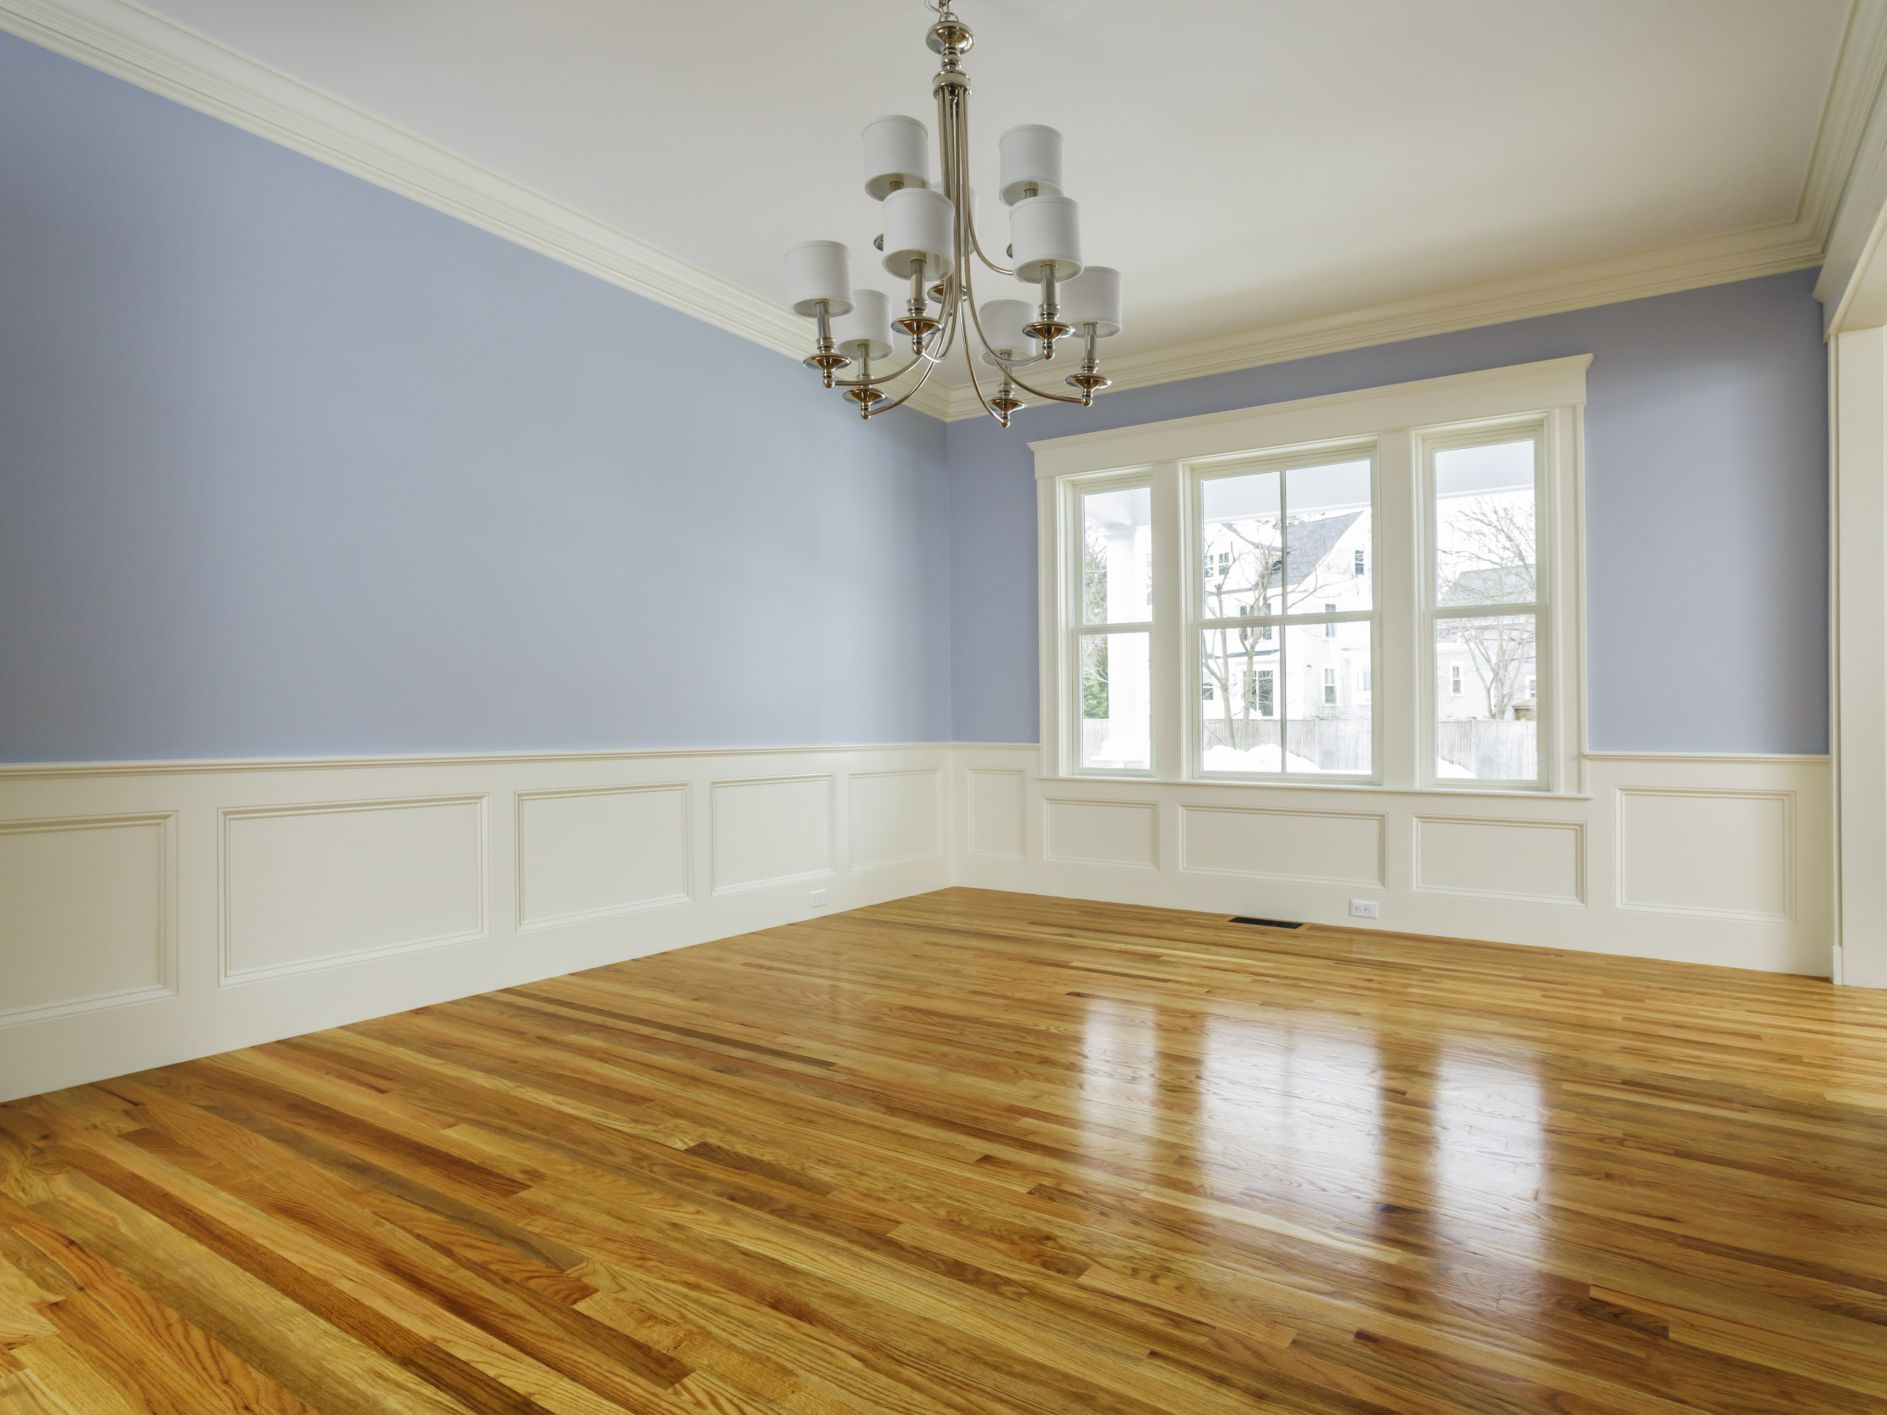 The Cost To Refinish Hardwood Floors